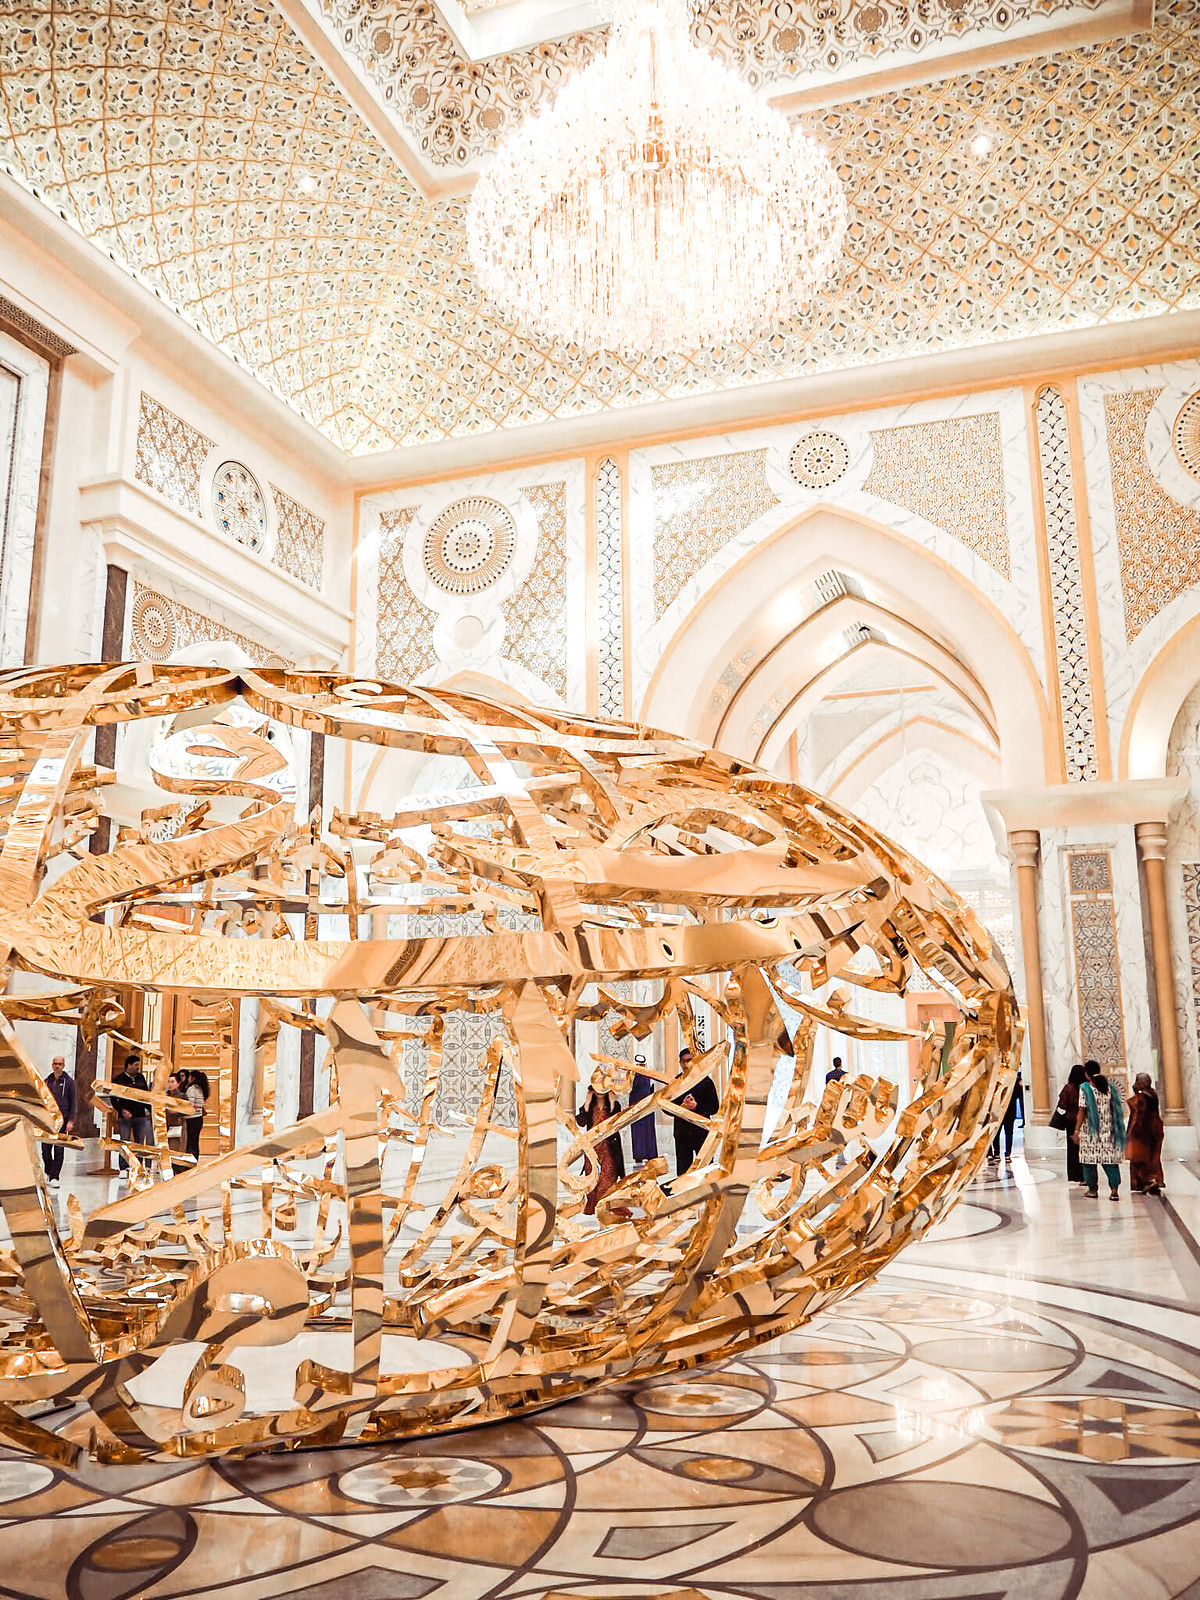 Abu Dhabi best things to do